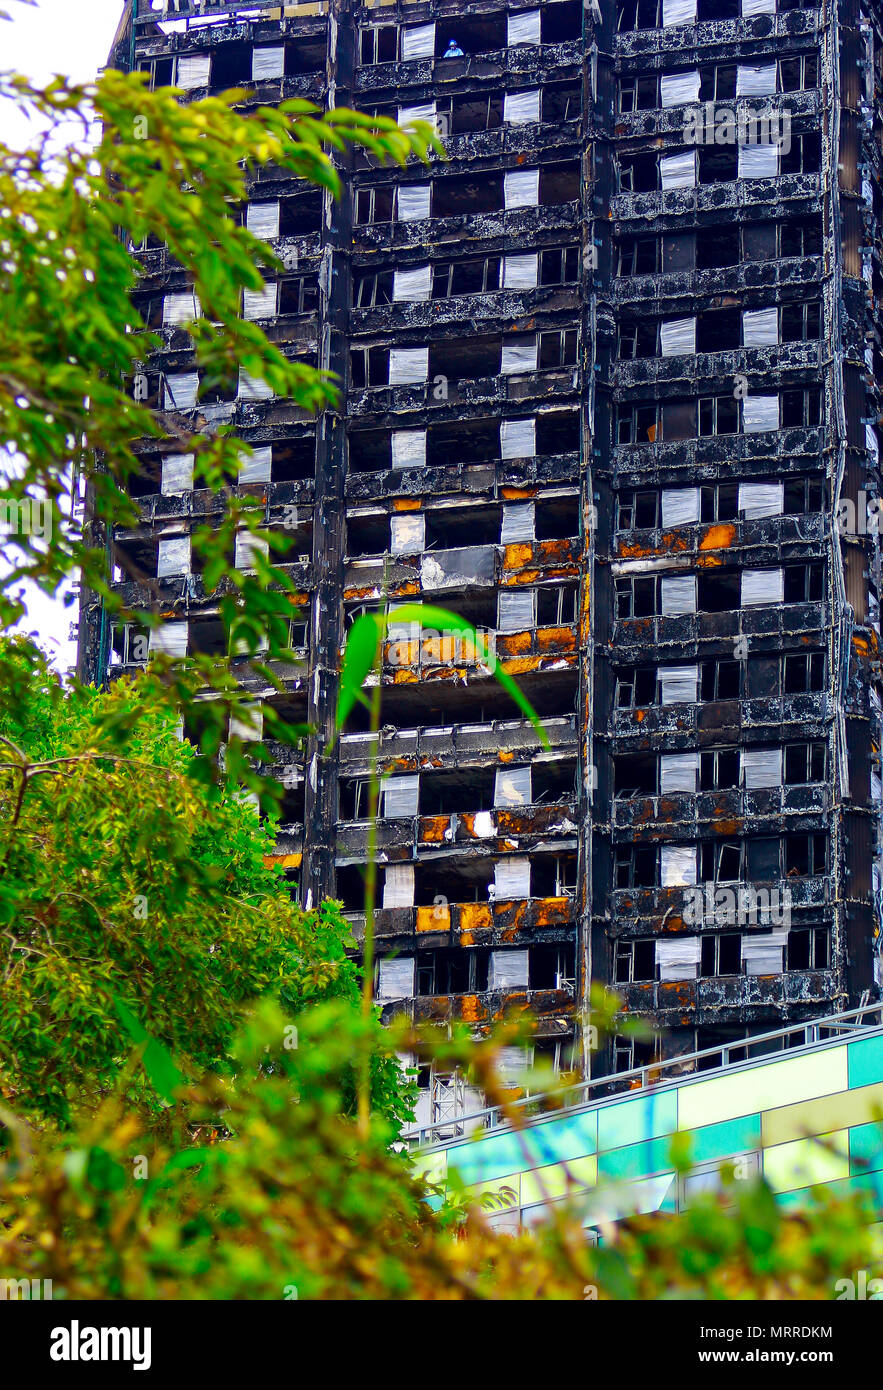 Street view of the burnt out Grenfell Tower after the fire of 14th June 2017 - Stock Image